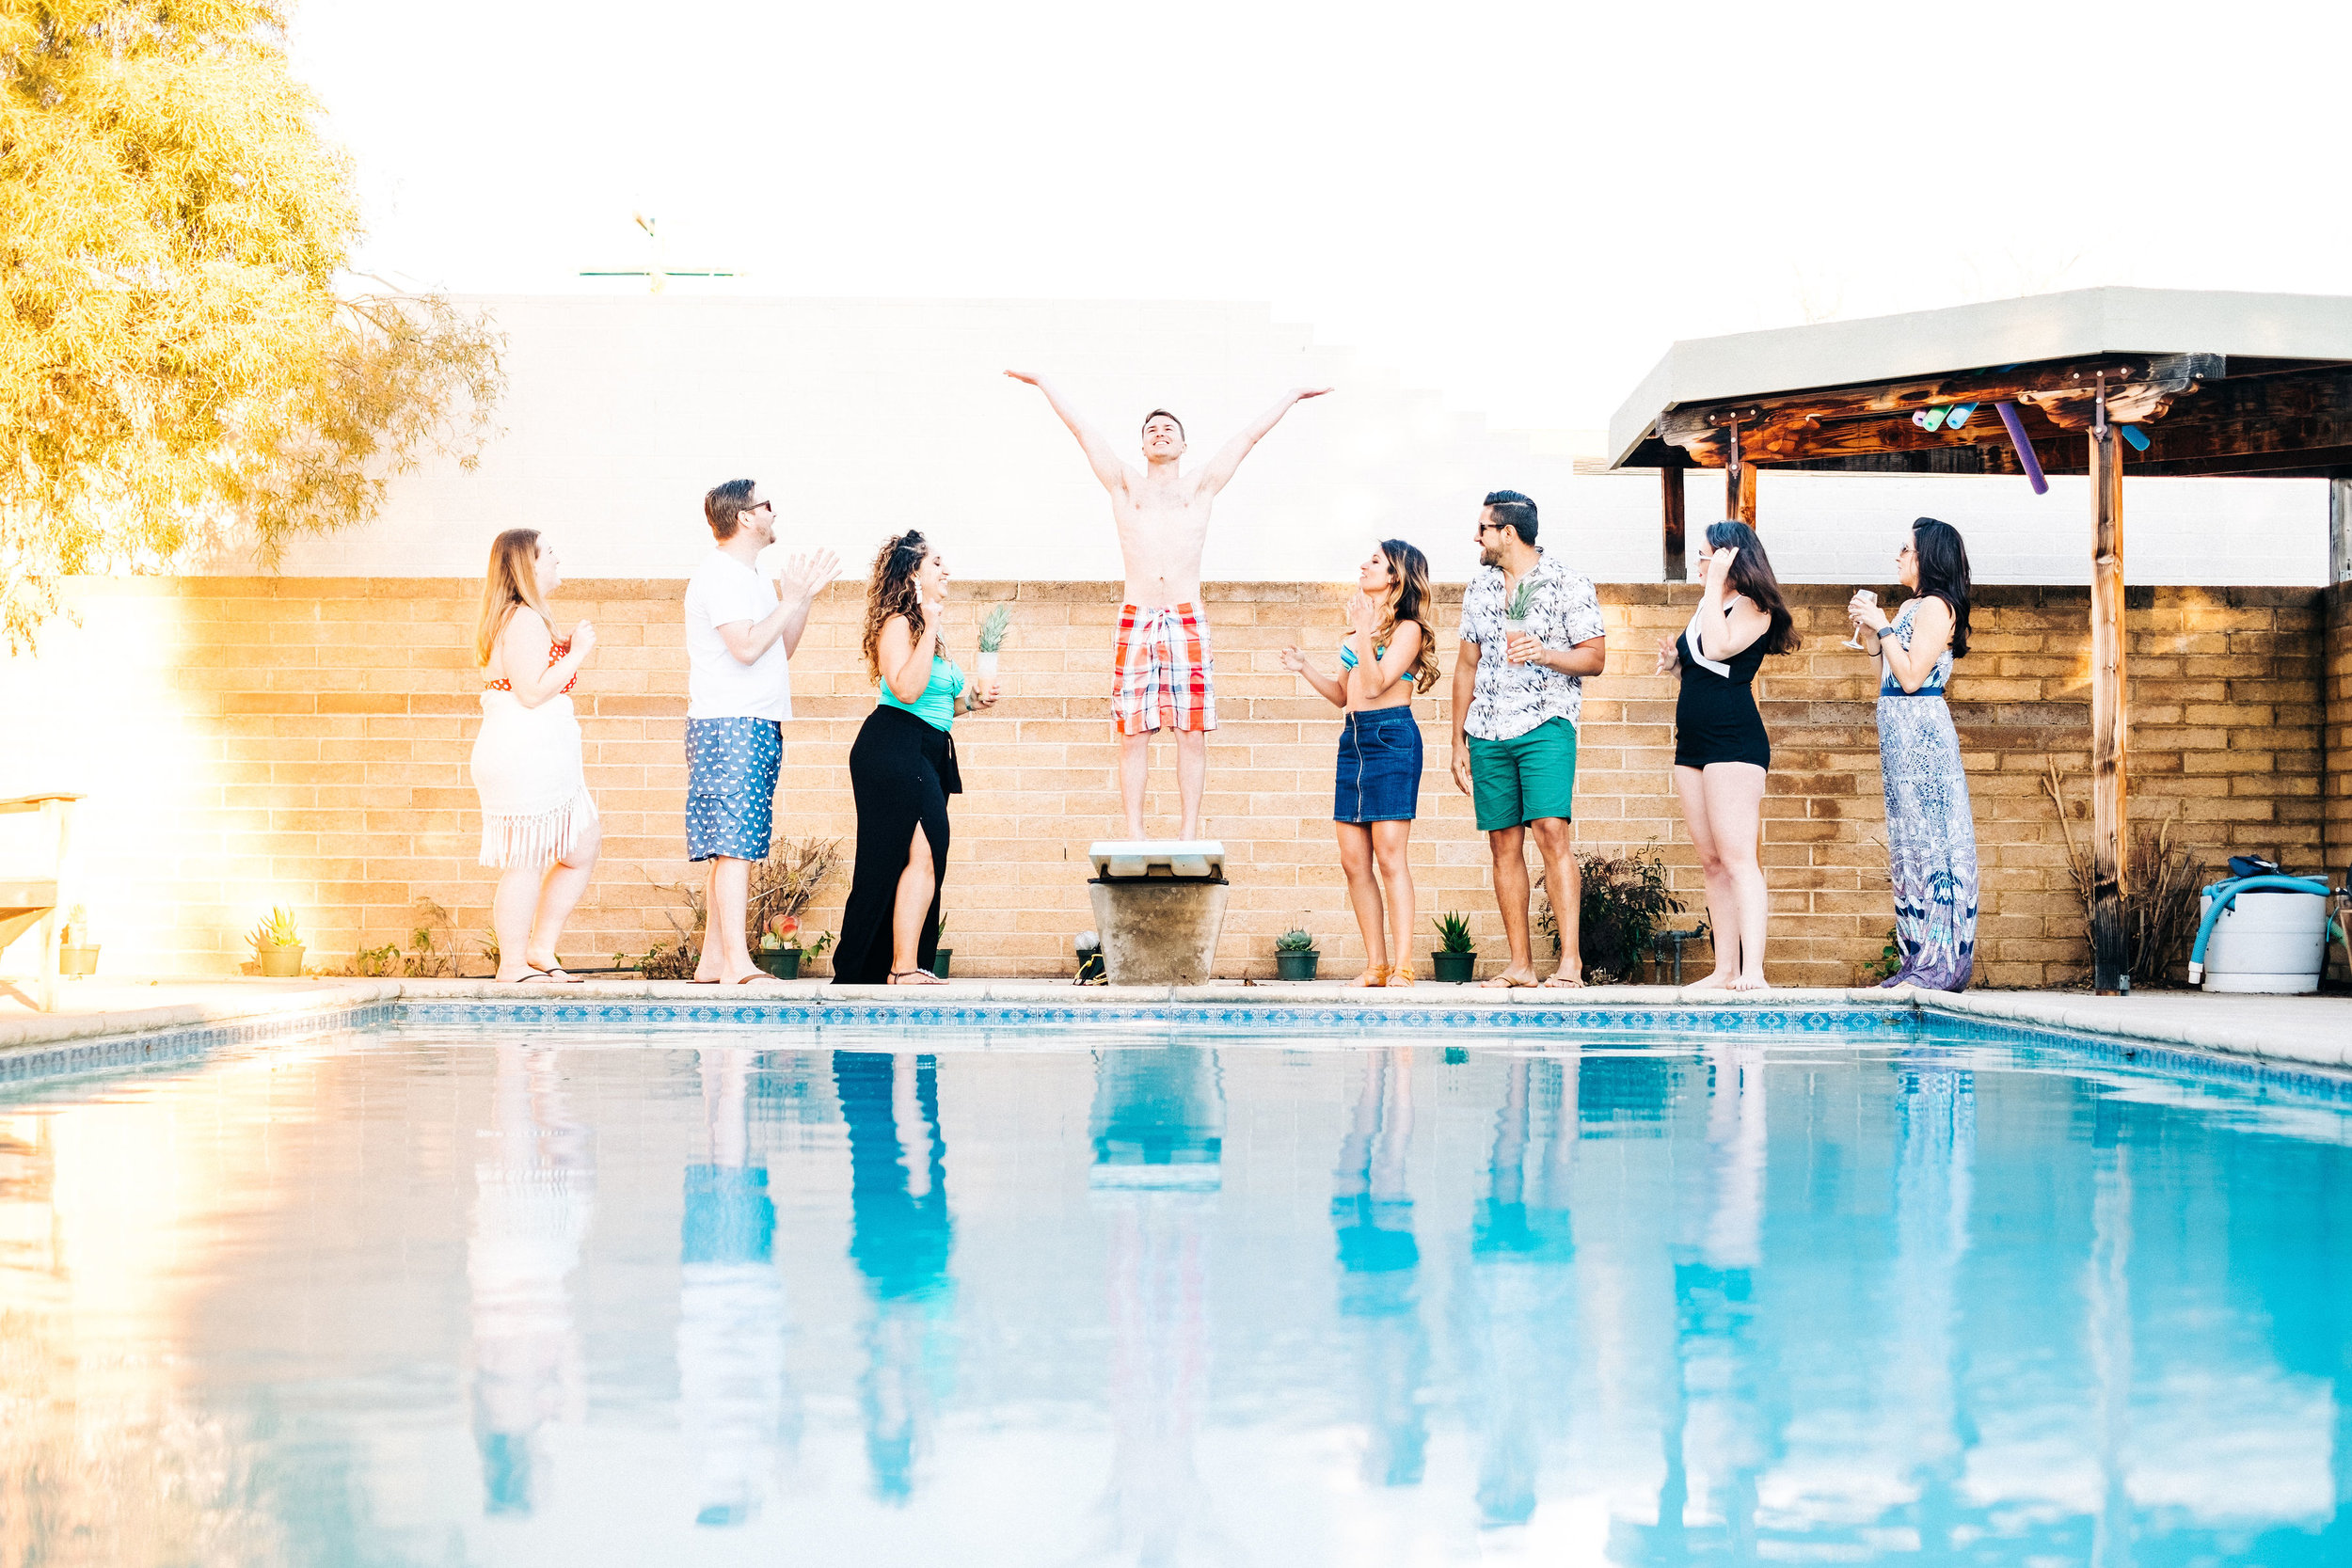 Andy-Shepard-Photography-Tucson-Pool-Party-96.jpg